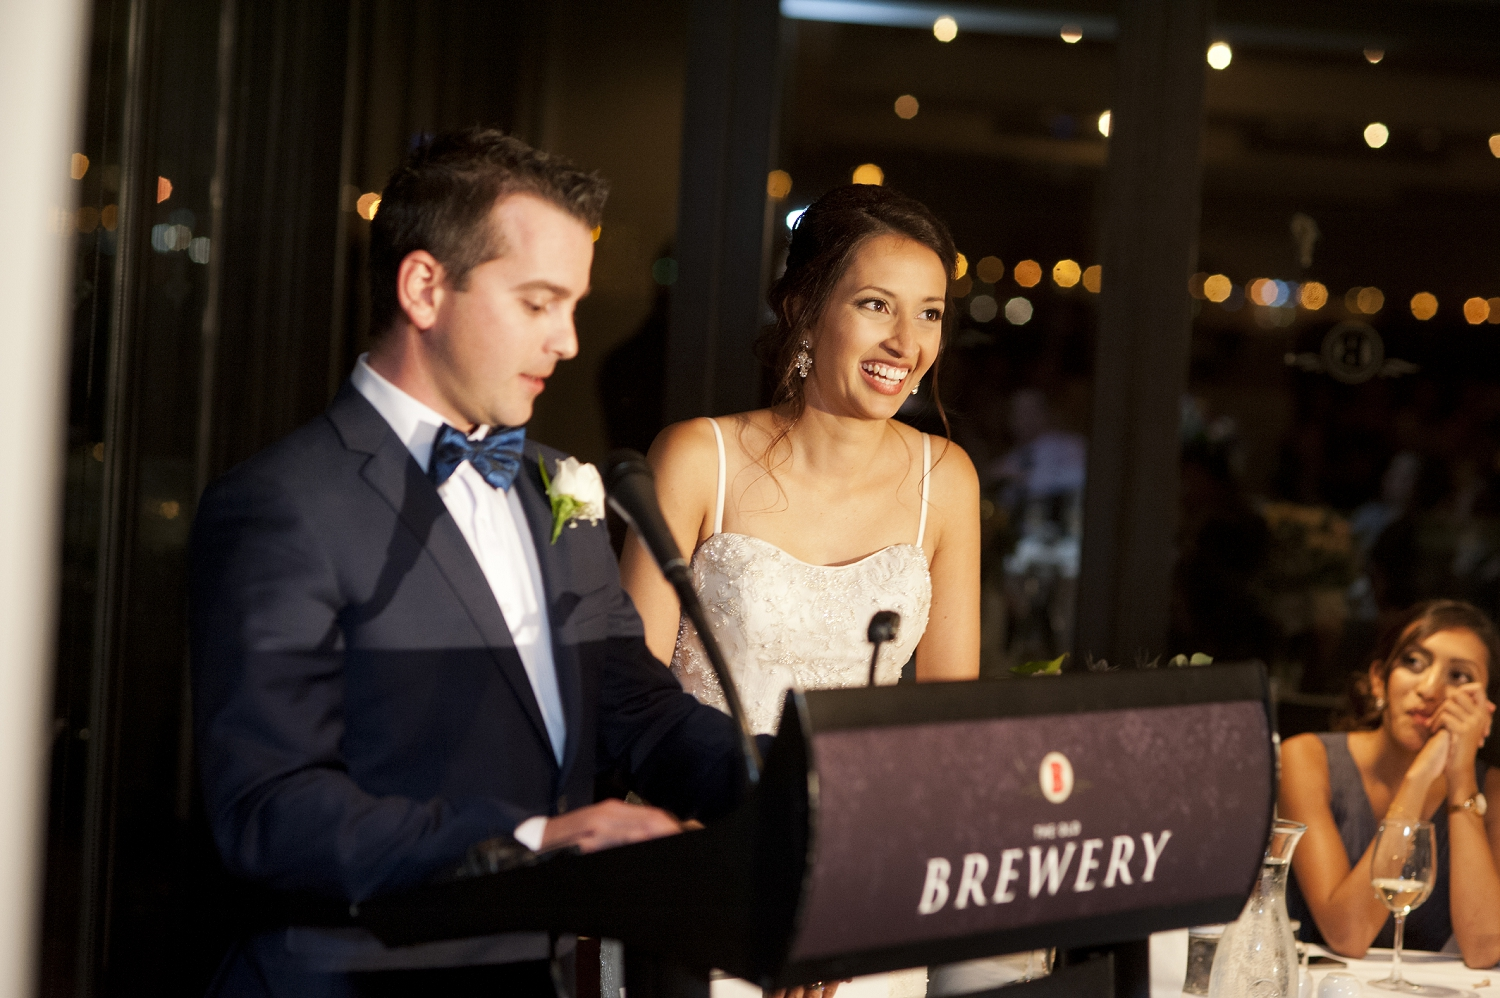 perth wedding st marys old brewery 22.jpg